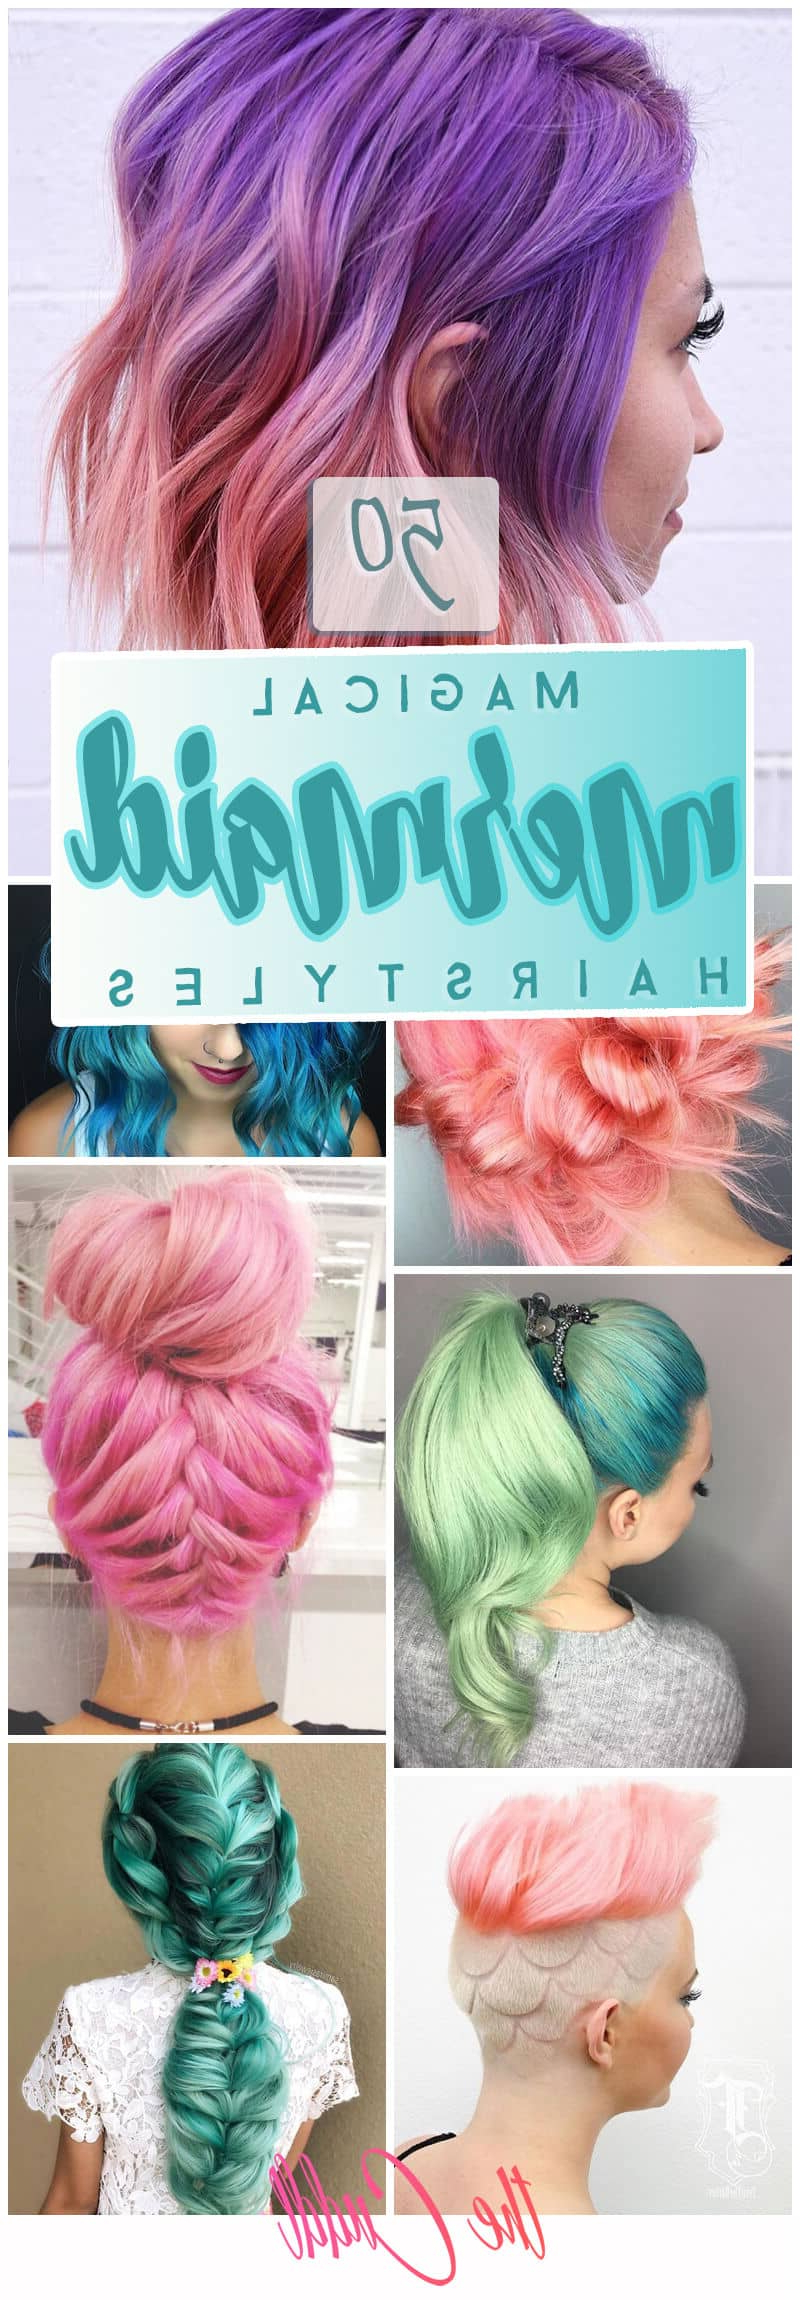 50 Magical Ways To Style Mermaid Hair For Every Hair Type Throughout Recent Cotton Candy Colors Blend Mermaid Braid Hairstyles (View 4 of 20)